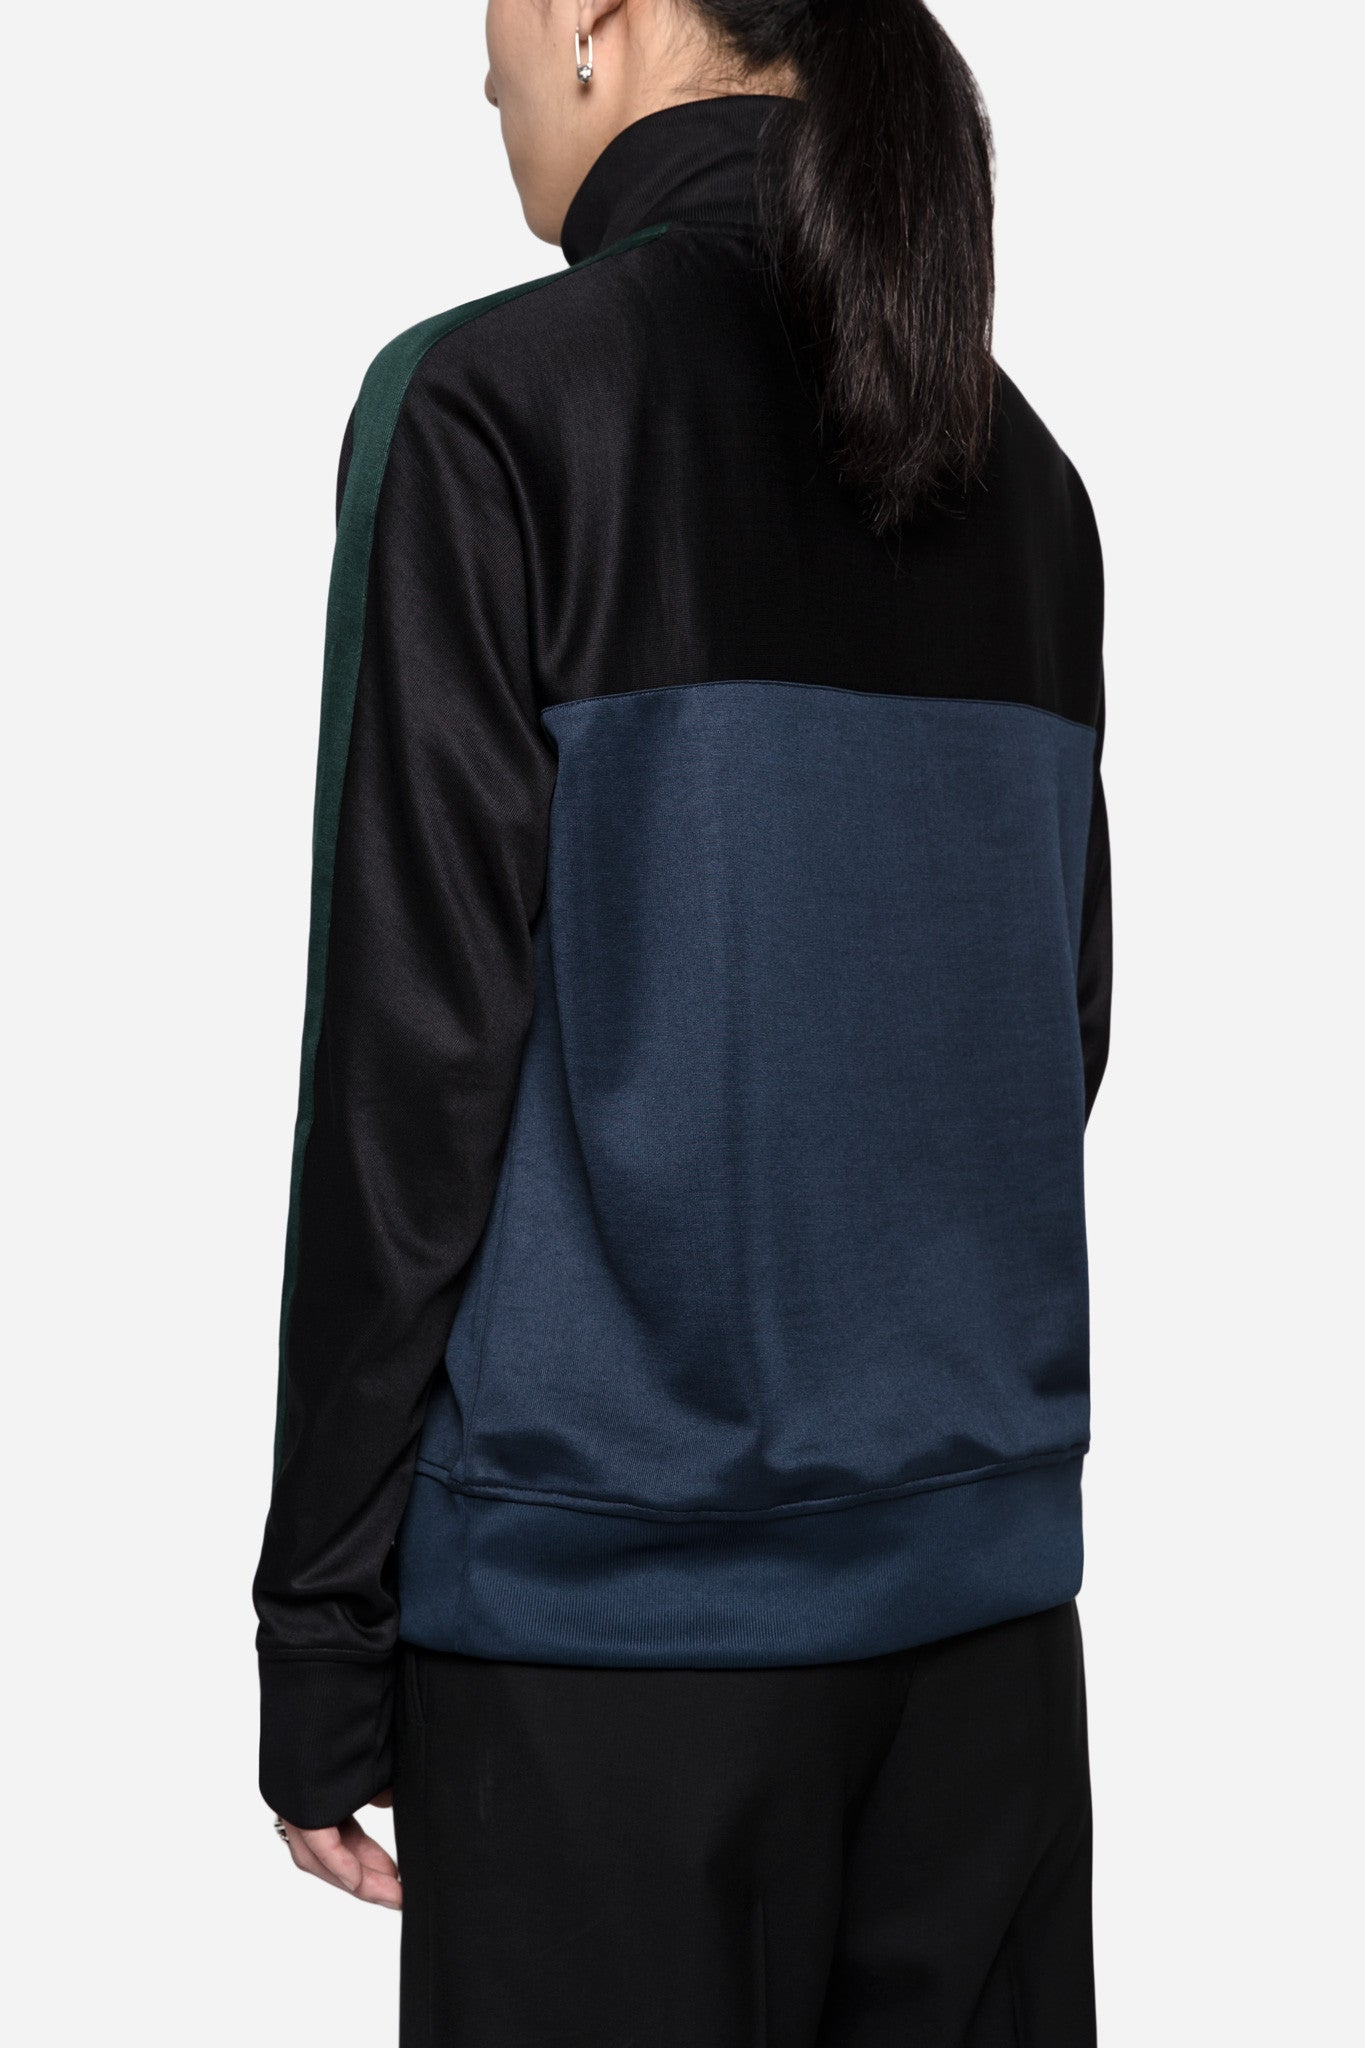 Half Zipped Sweatshirt Black/Navy